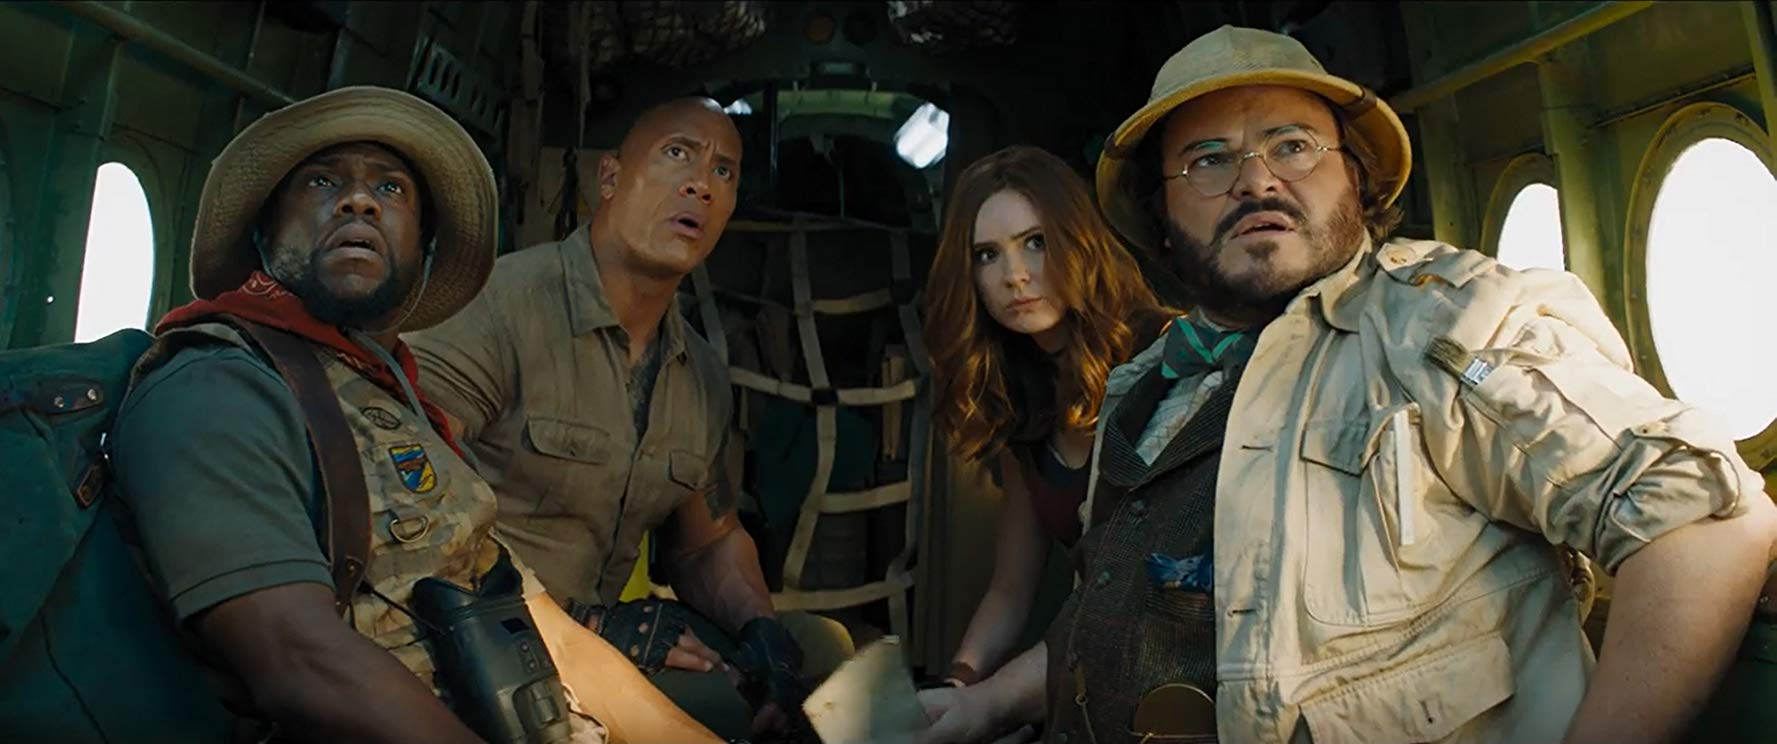 REVIEW: 'Jumanji: The Next Level' is an adventure (but it's not kid-friendly)